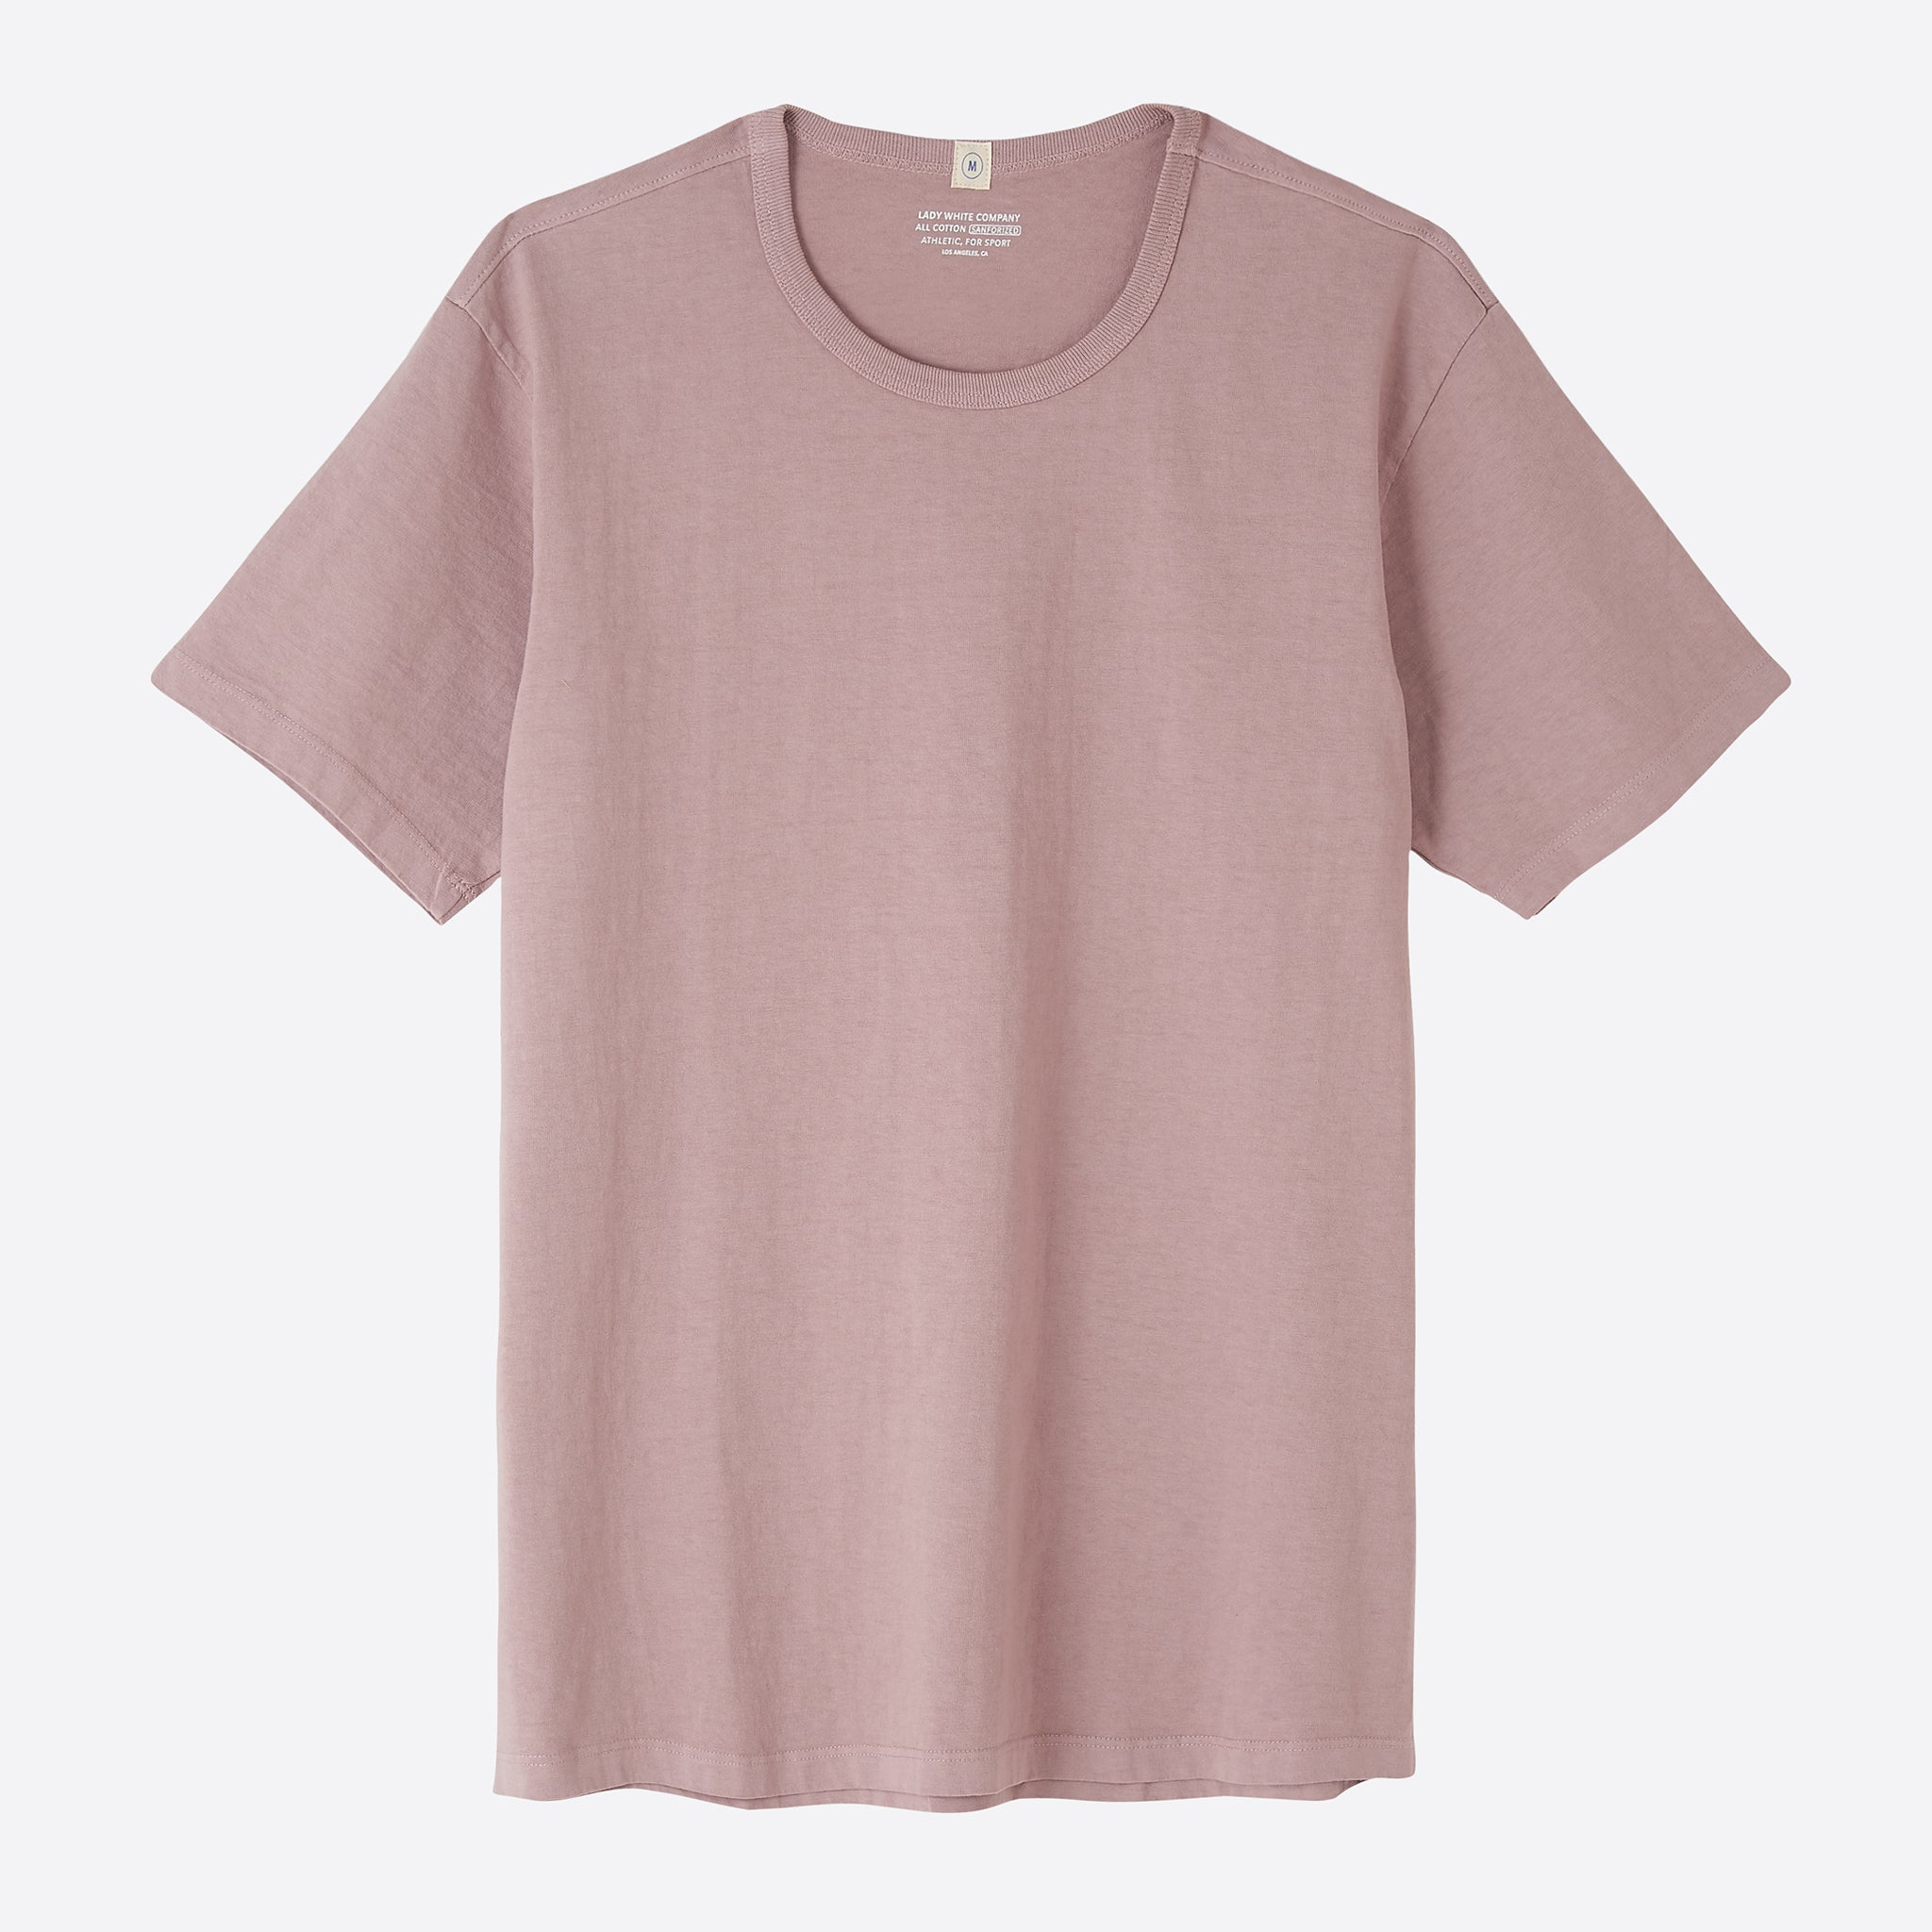 Lady White Co. Our T-Shirt in Mauve